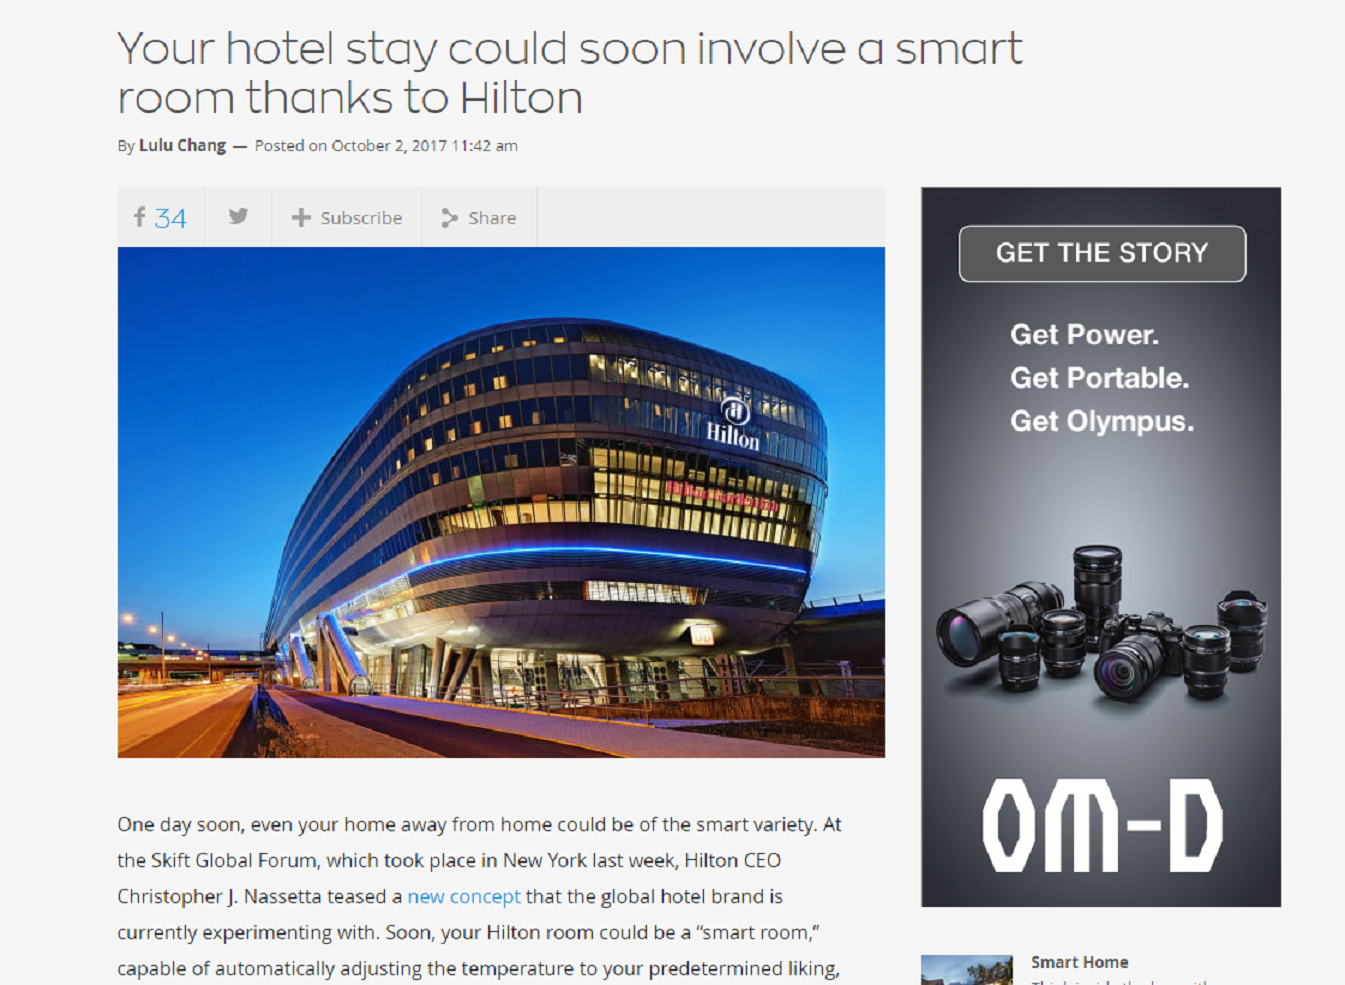 Your Hotel Stay Could Soon Involve a Smart Room Thanks to Hilton